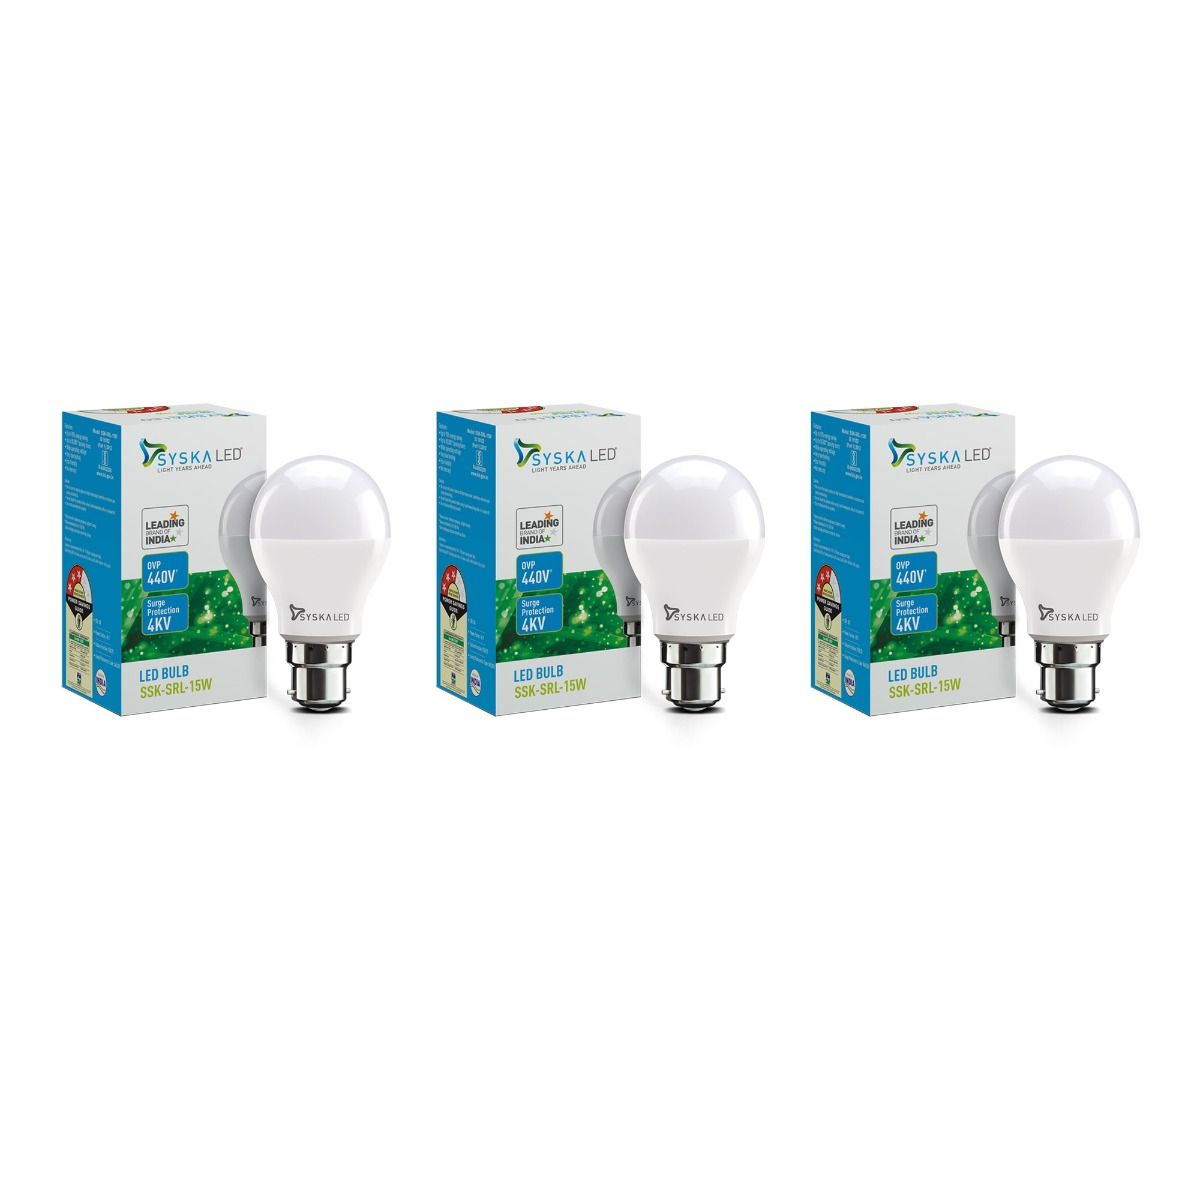 SYSKA 15W LED Bulbs with Life Span Up To 50000 Hours- (White)- Pack of 3